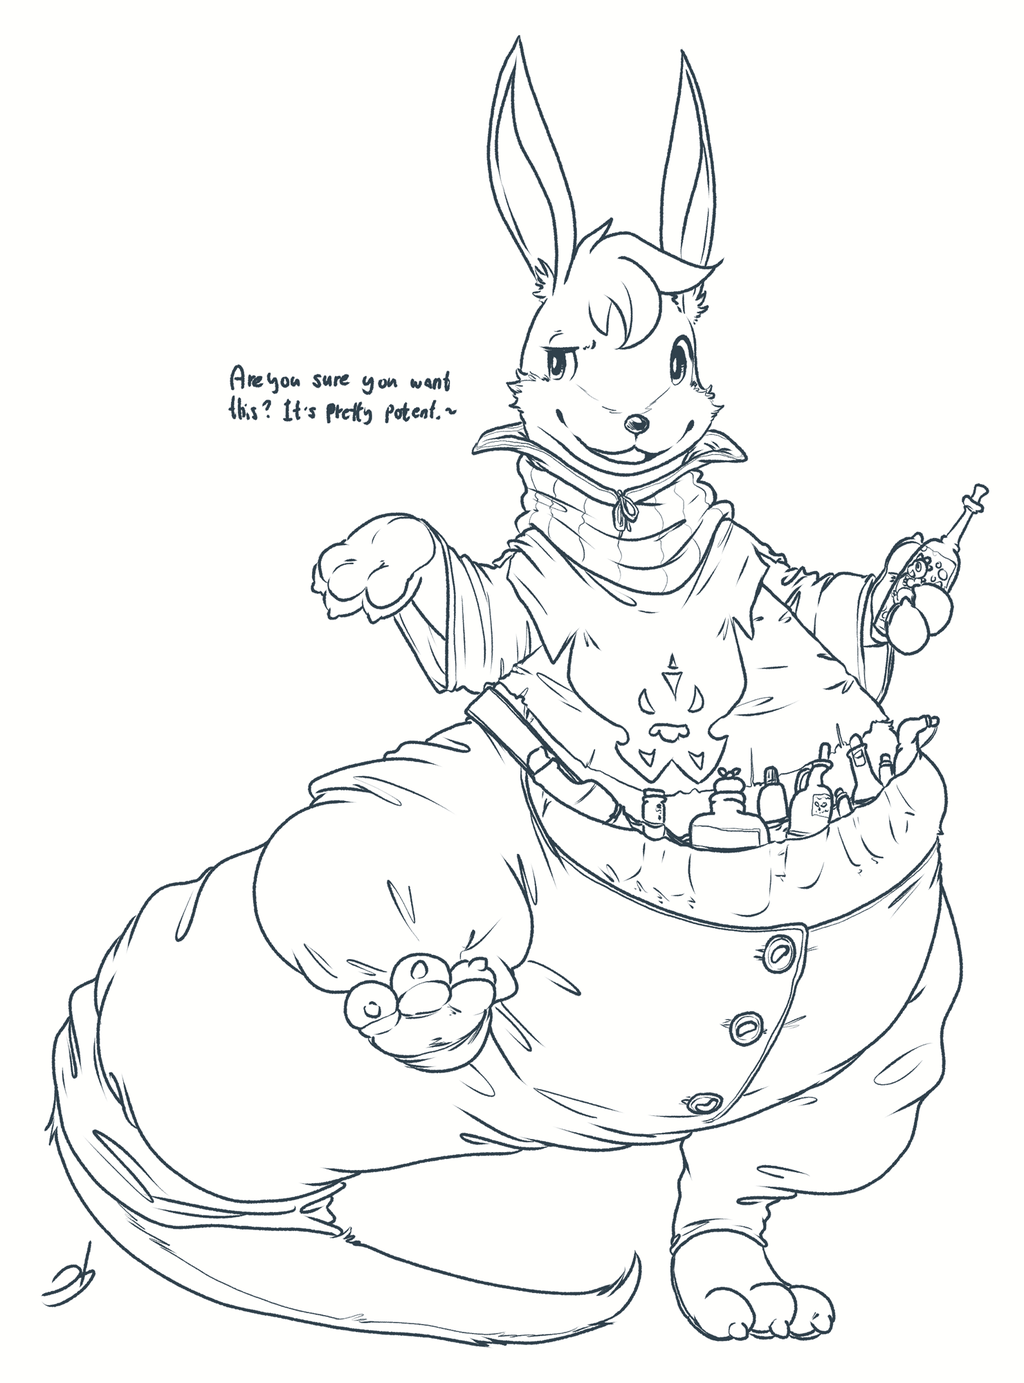 Roo Potion Seller